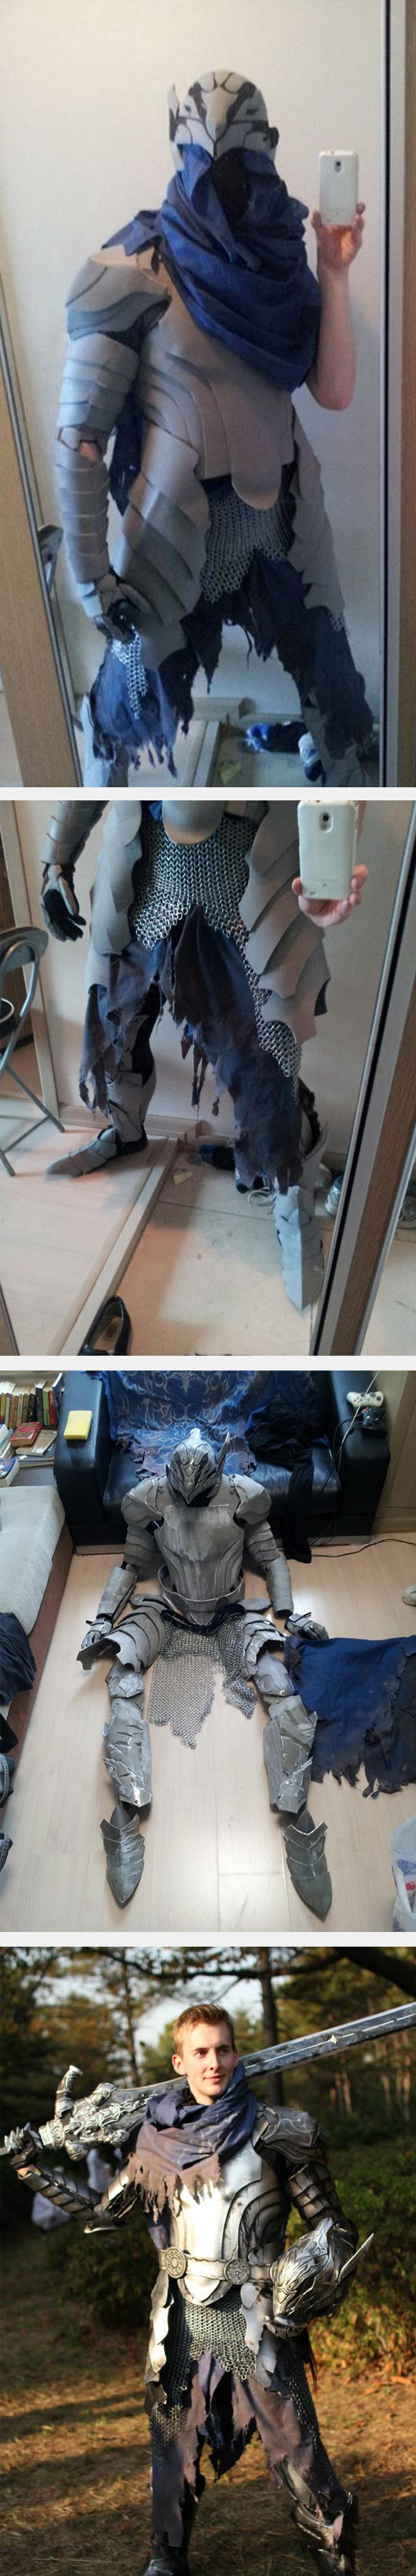 3-funny-cosplay-brothers-artorias-knight-design